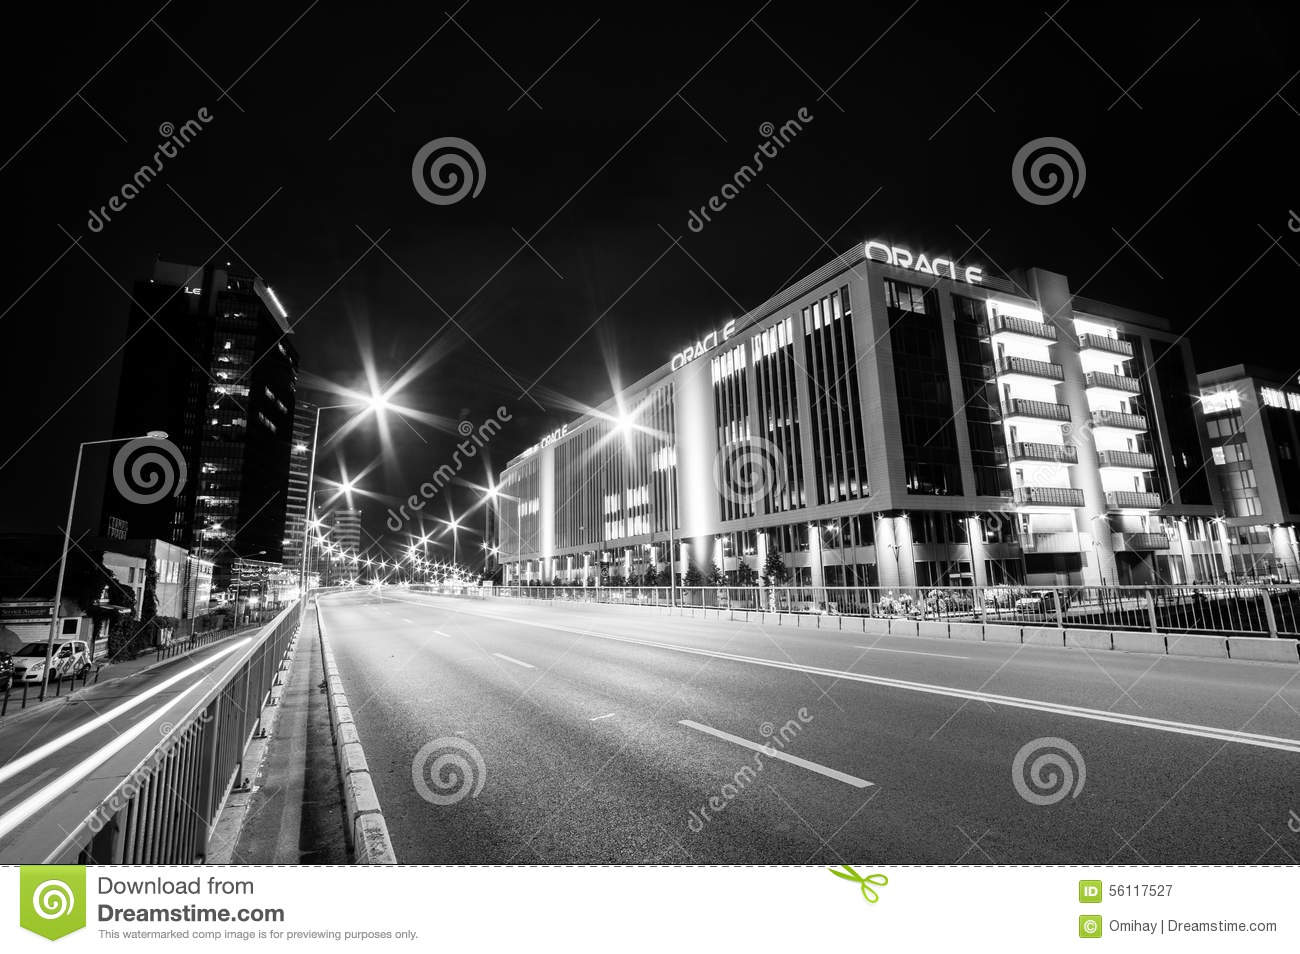 Bucharest, Romania, June 28, 2015 - Business architecture at night - skyscrapers and street lights- in black and white